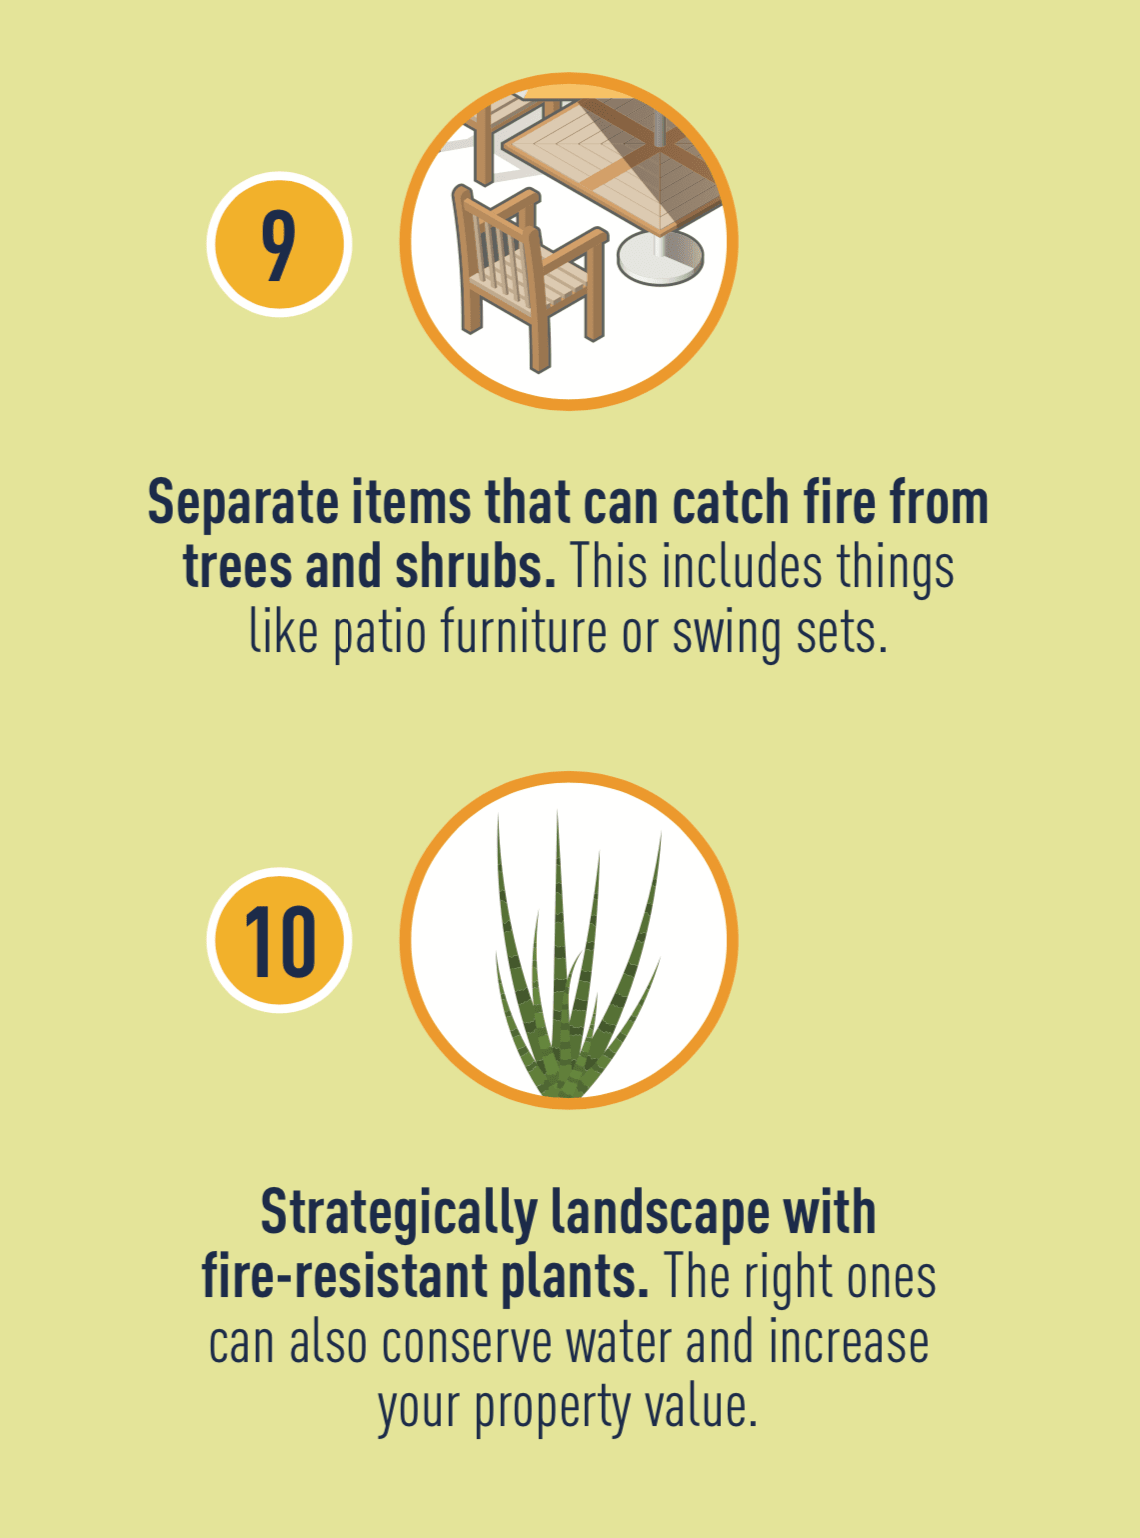 Icon of patio furniture, and icon of fire-resistant plant.